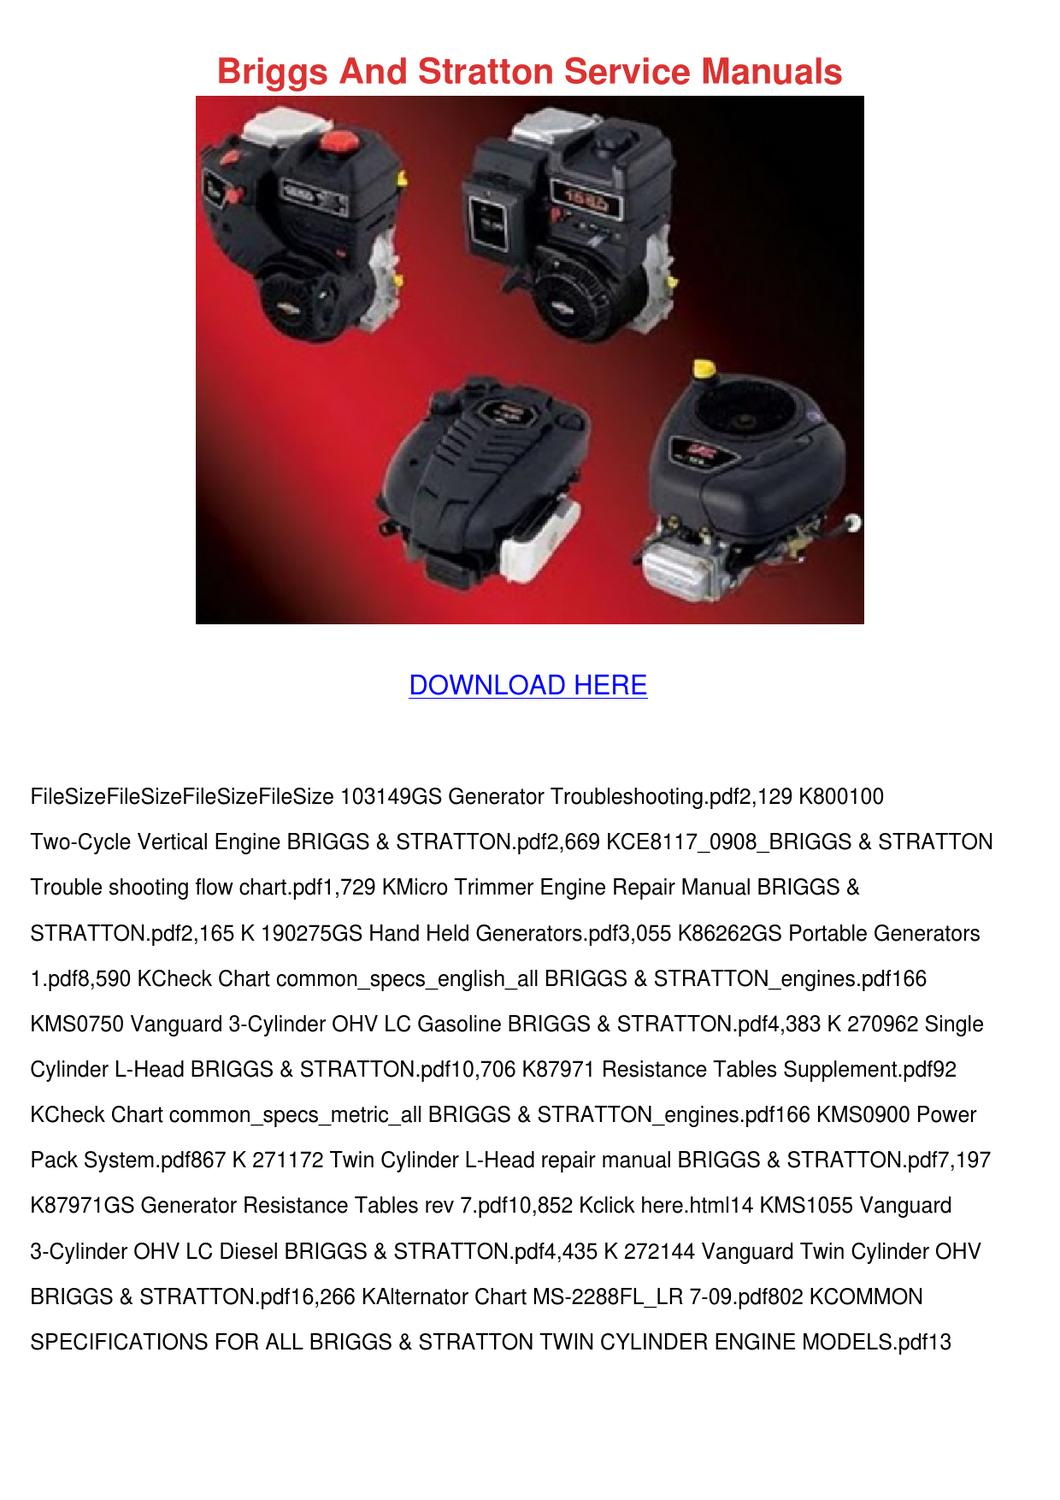 Briggs And Stratton Service Manuals By Lula Hattaway Issuu border=